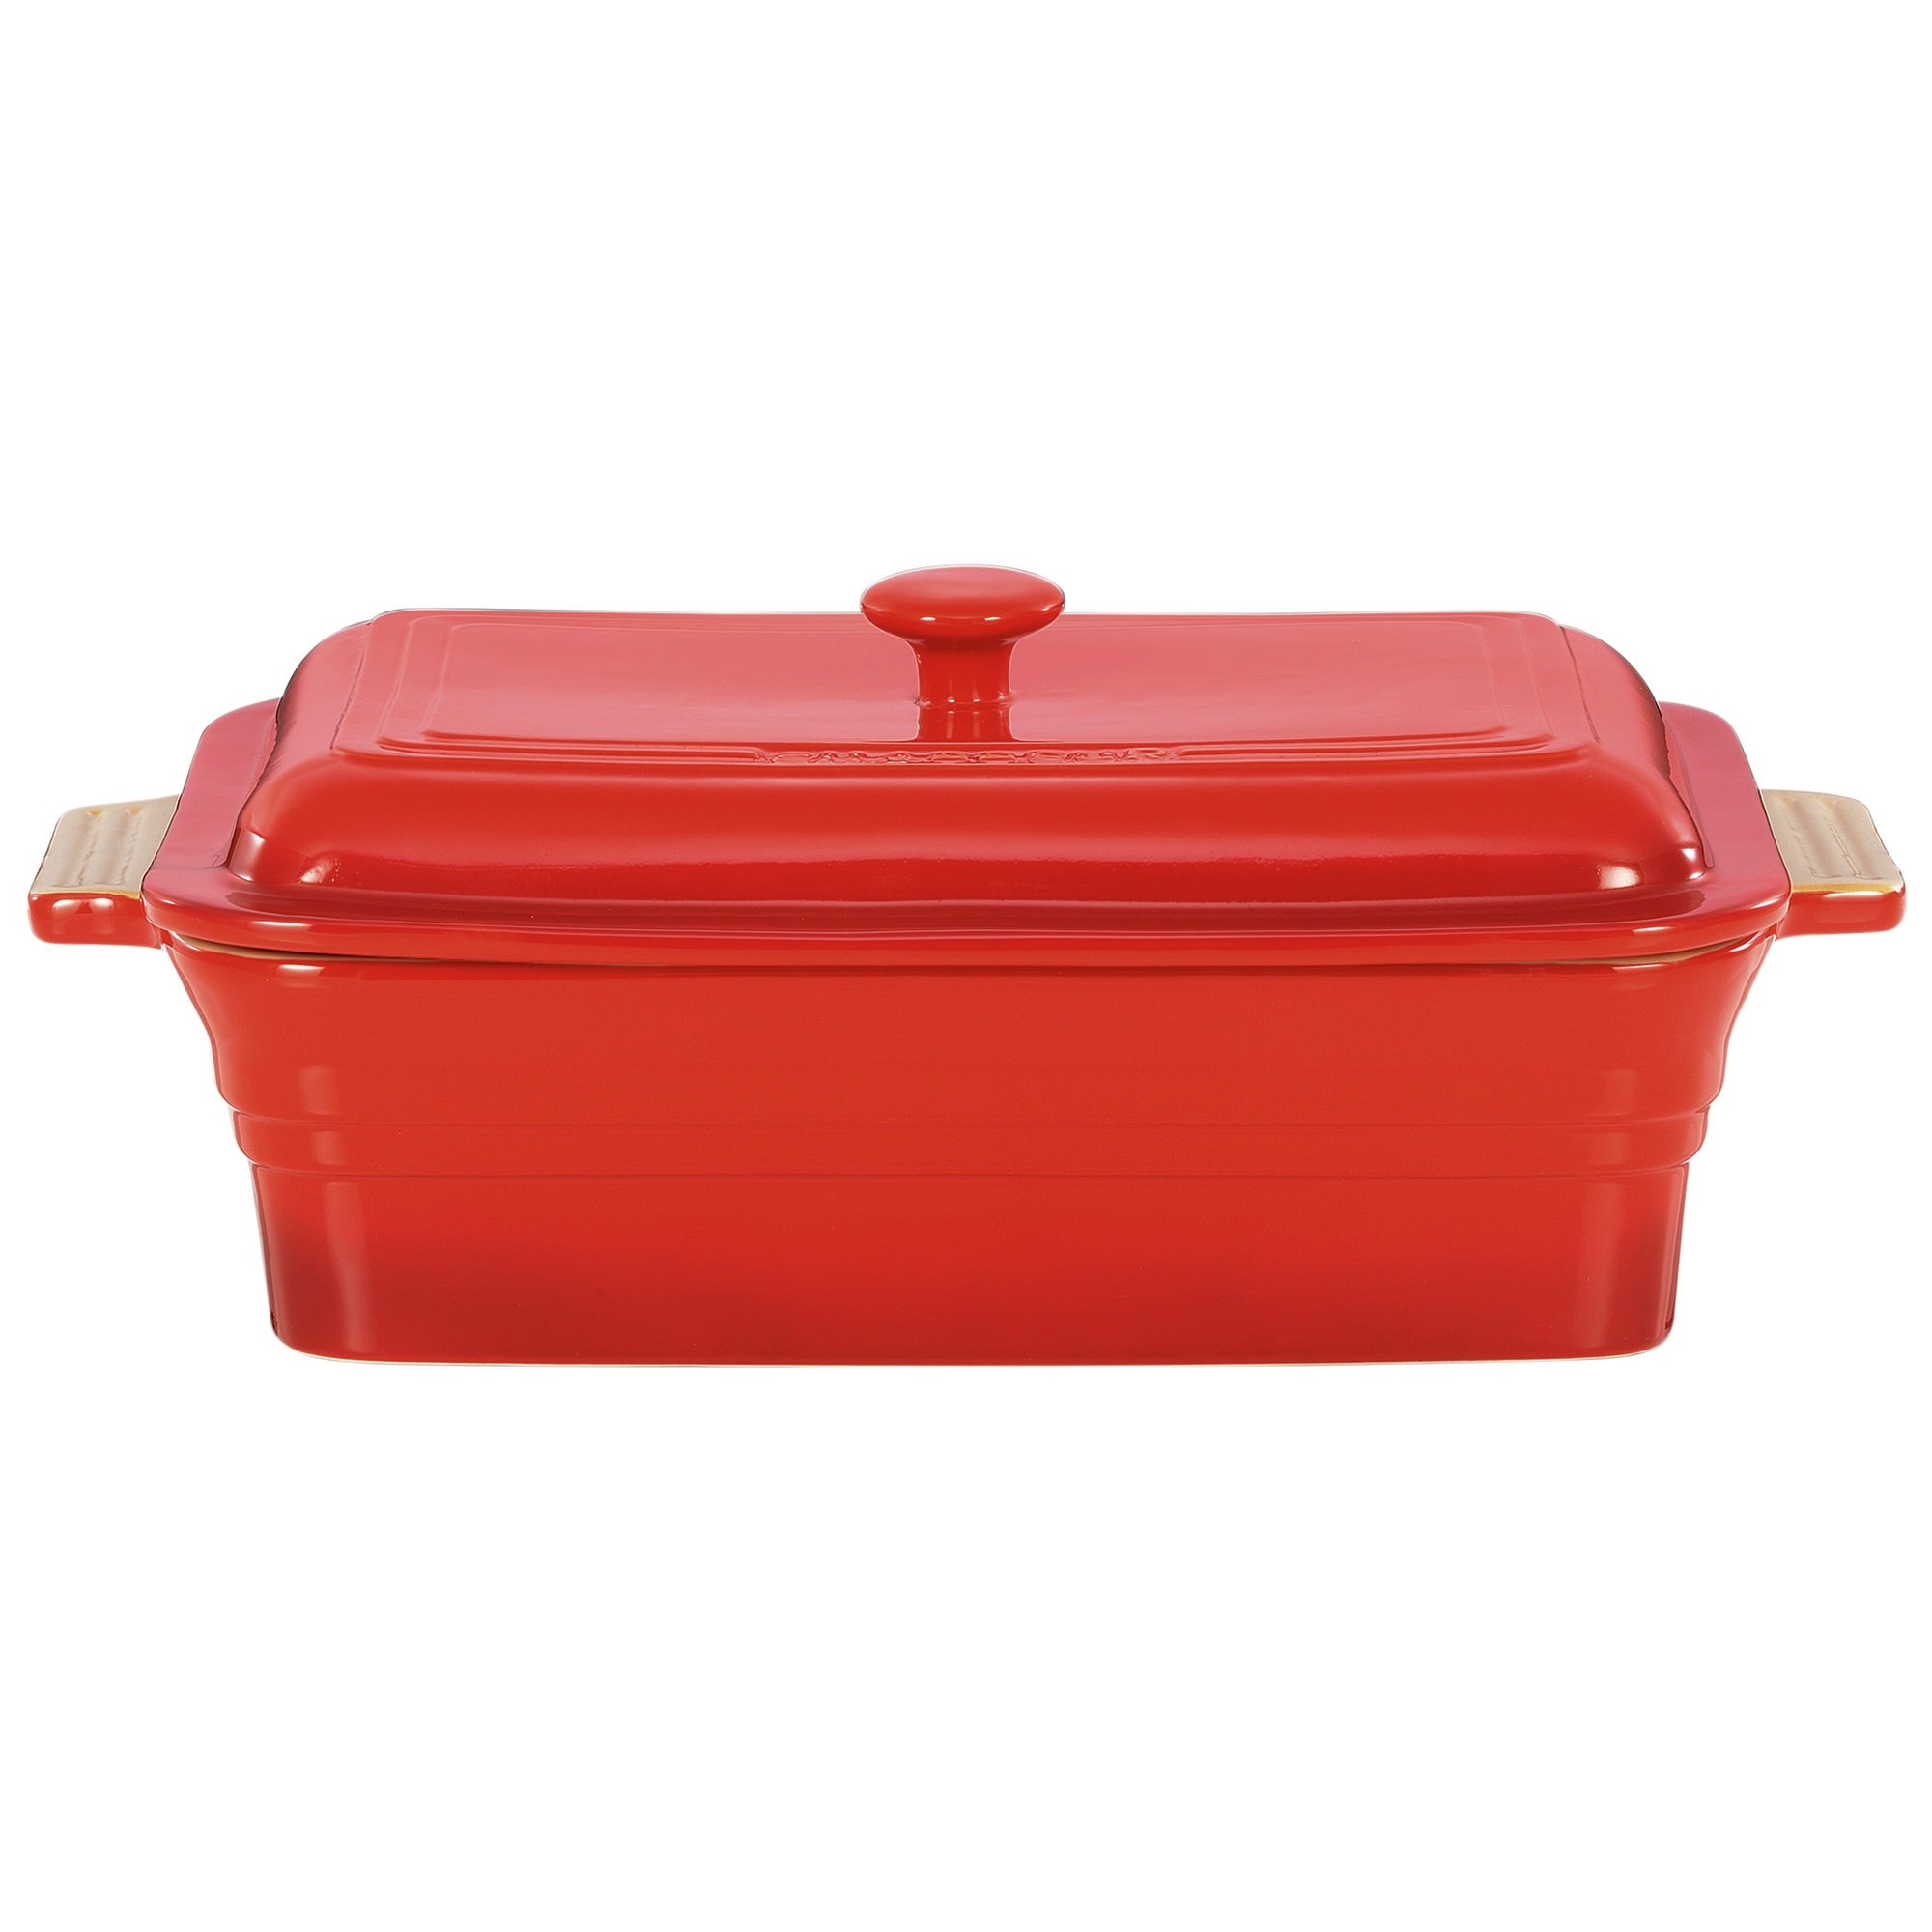 Chasseur La Cuisson 40x23cm Rectangular Baker with Lid - Red